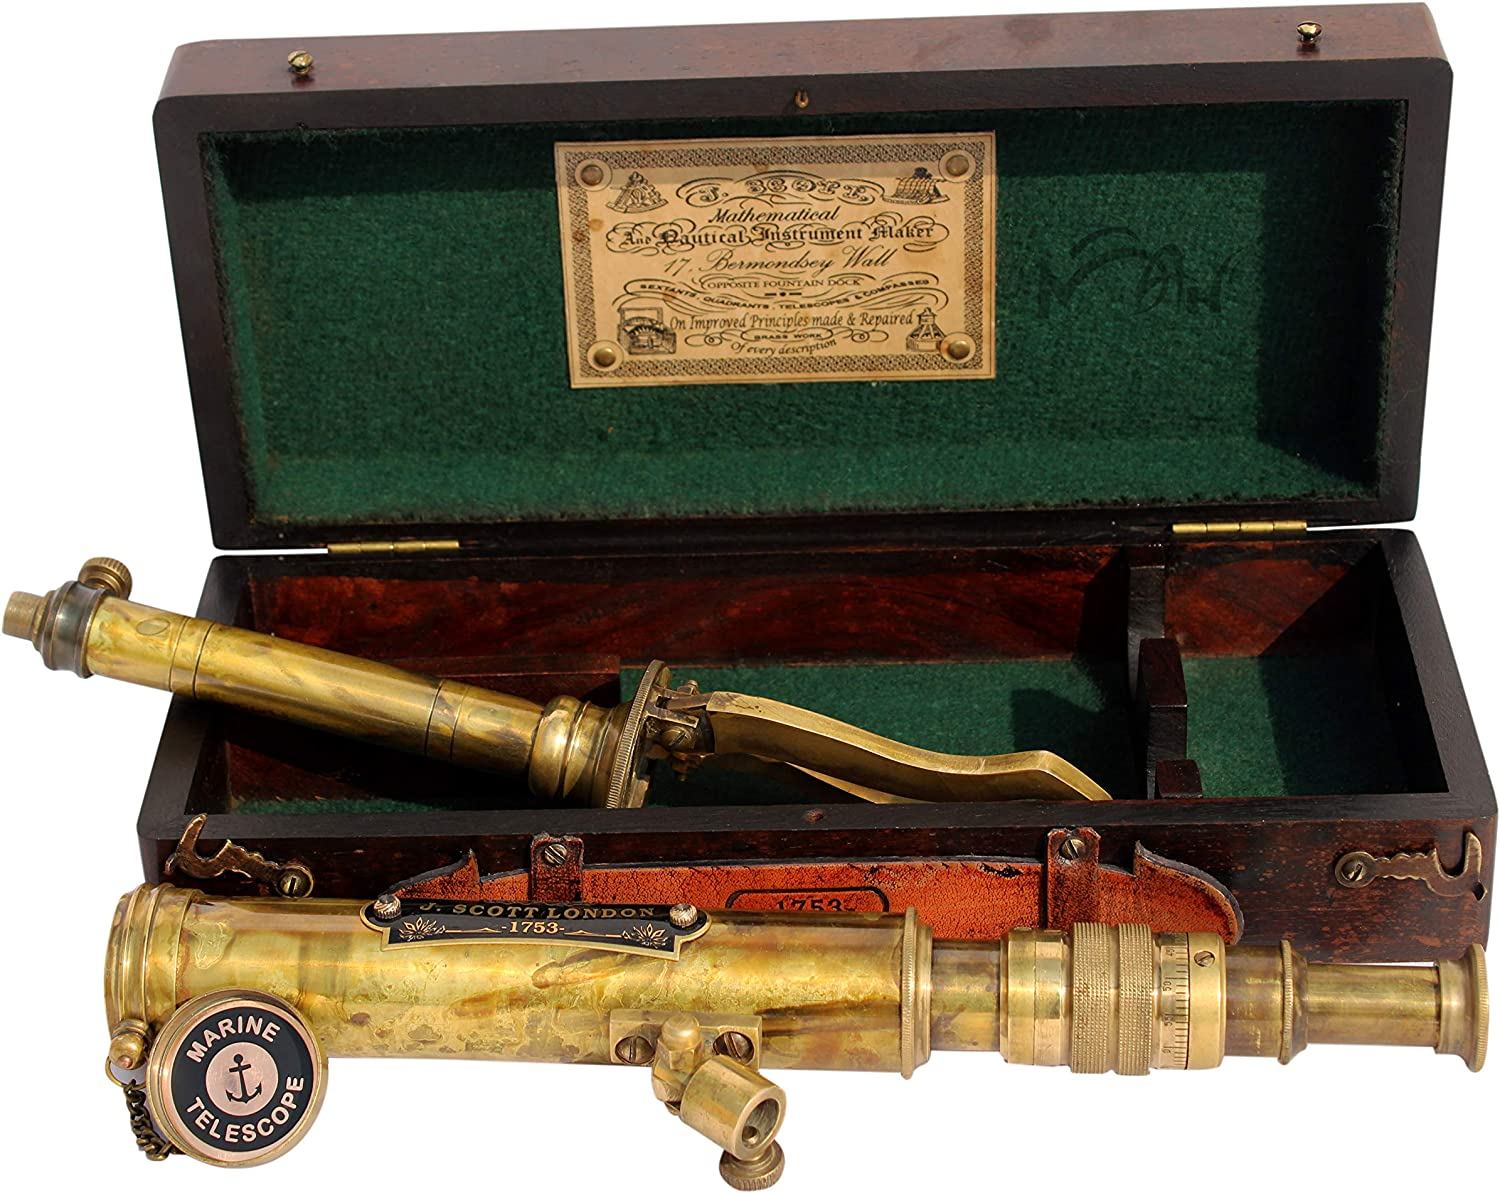 MAH 11inch Vintage Style Marine Spyglass Brass Stand Telescope with Wooden Box C-3201